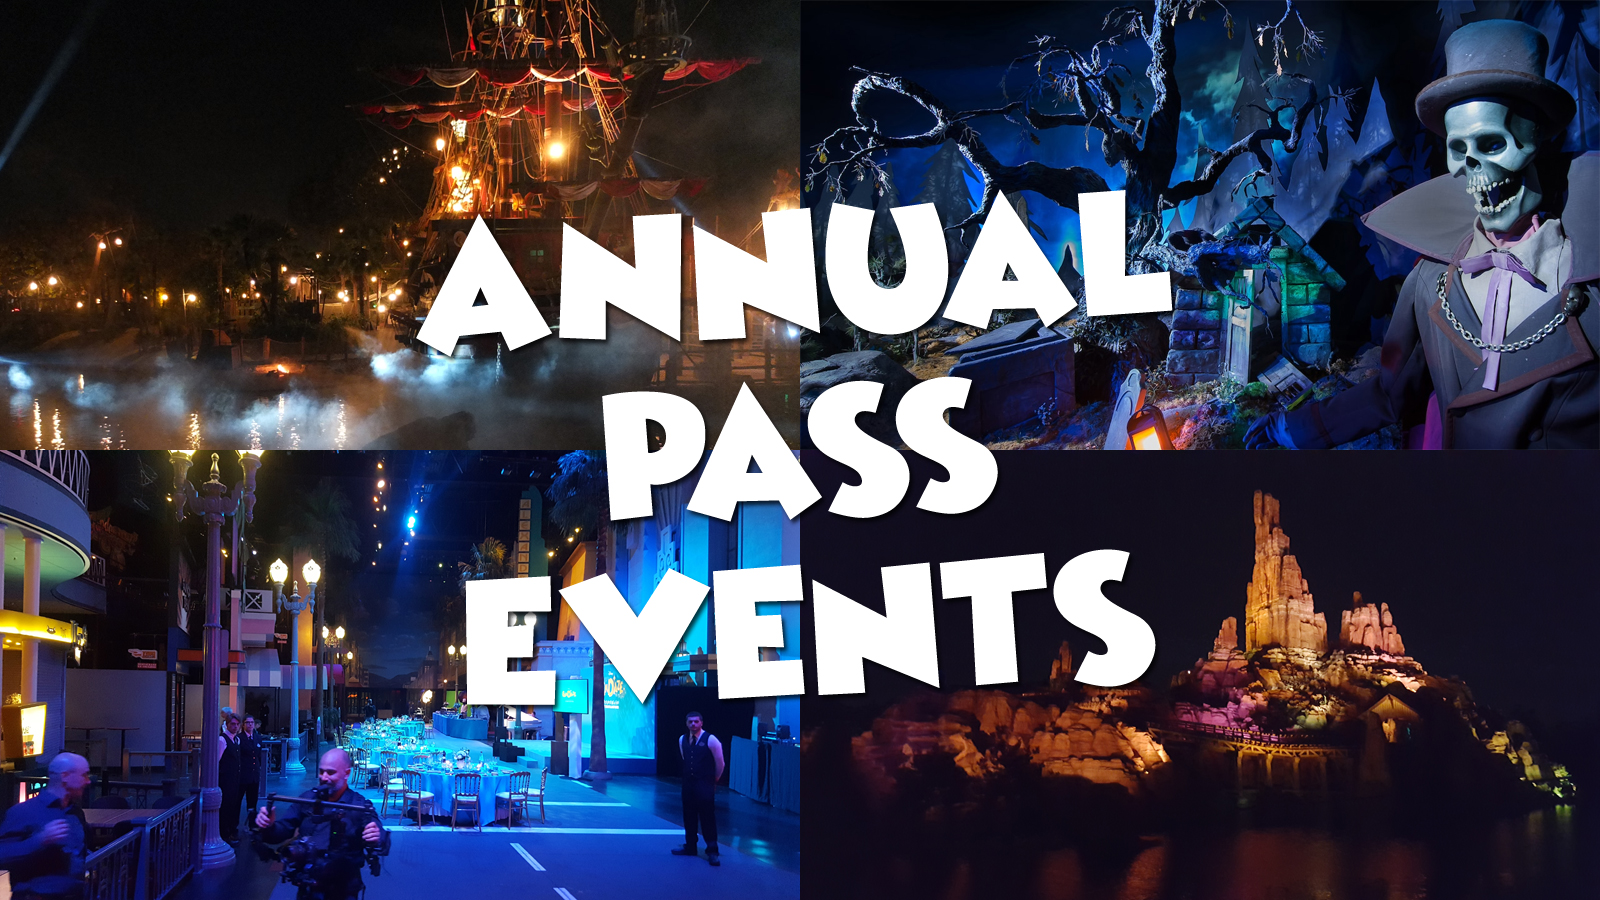 Disneyland Paris Annual Pass Exclusive Events: We Have Tower of Terror, But What Should Be Next?